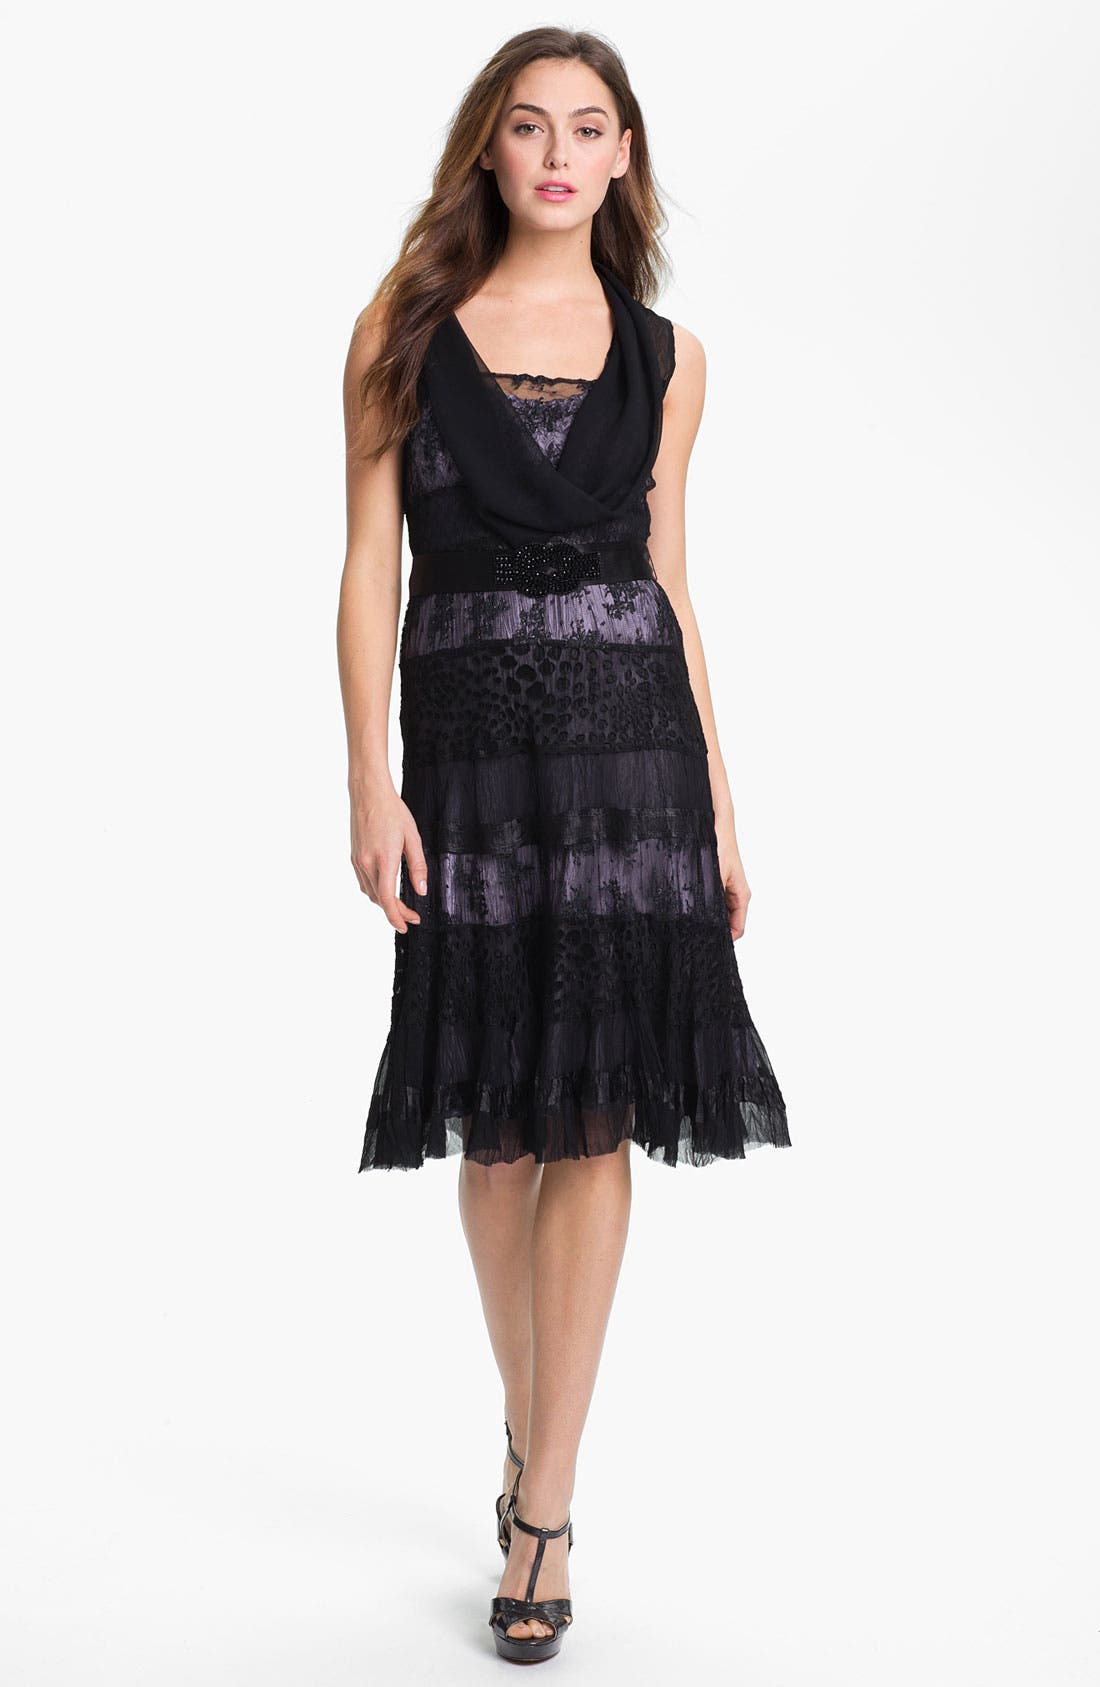 Alternate Image 1 Selected - Black by Komarov Lace Panel A-Line Dress